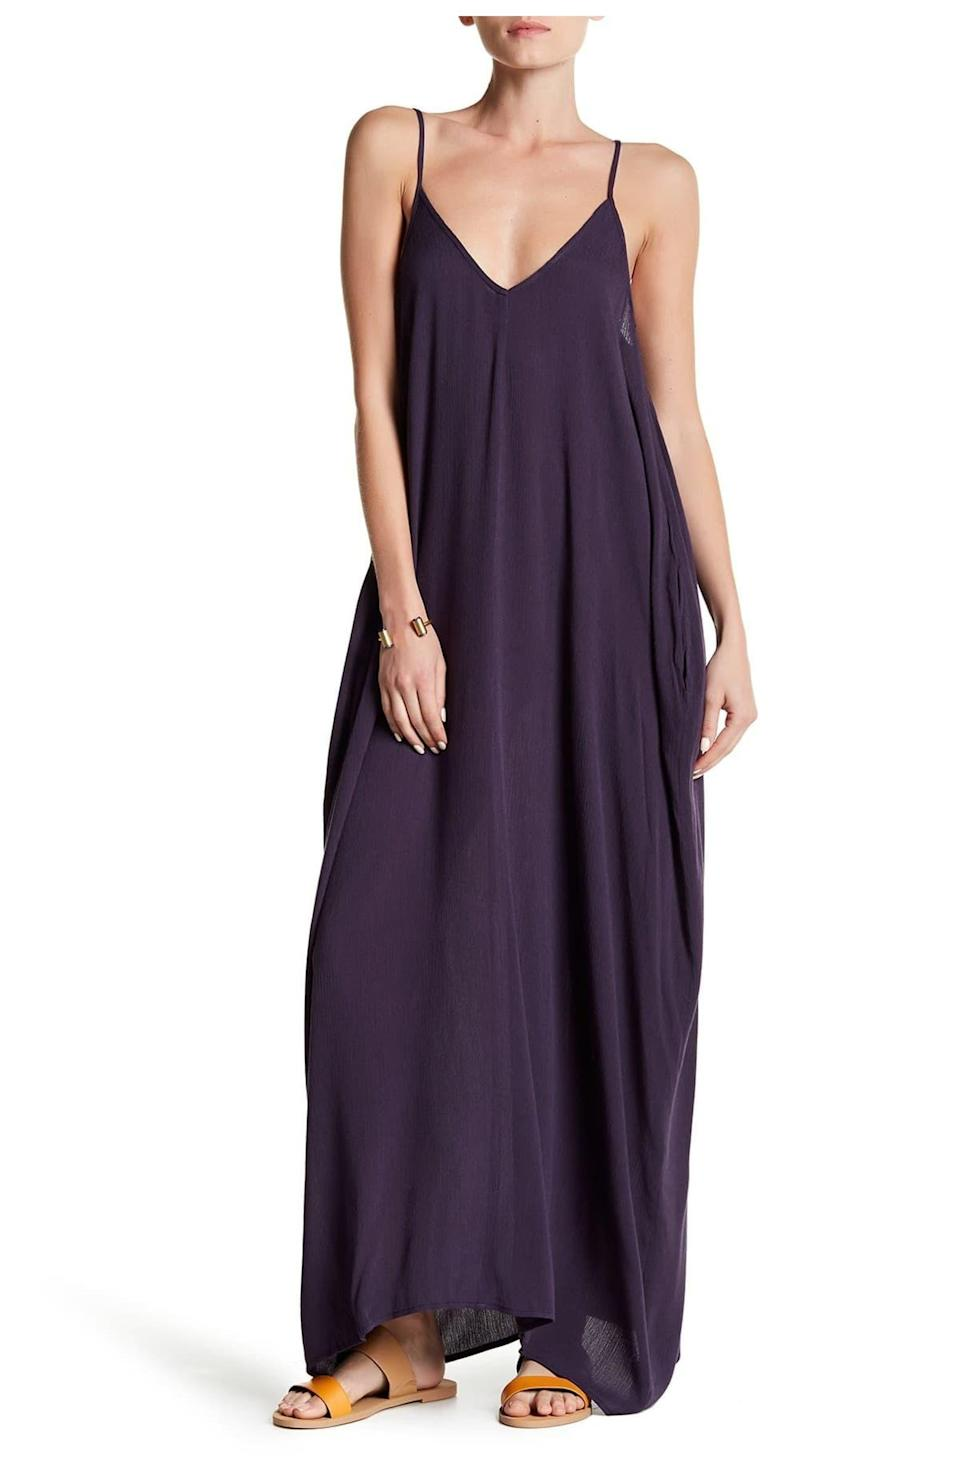 """<h2>Lovestitch Maxi Dress</h2><br>This compliment-magnet of a maxi dress may have a lot of fabric, but don't mistake it for a stylish sweat fest. Its relaxed silhouette and airy material make this a cool choice, whether it's worn solo or with layers. <br><br><strong>The Hype:</strong> 4.6 out of 5 stars; 14 reviews on <a href=""""https://www.nordstromrack.com/s/lovestitch-maxi-dress/4989290"""" rel=""""nofollow noopener"""" target=""""_blank"""" data-ylk=""""slk:NordstromRack.com"""" class=""""link rapid-noclick-resp"""">NordstromRack.com</a><br><br><strong>What They're Saying:</strong> """"Obsessed with this dress!!!! The best summer """"throw-on-and go"""" while looking cute and out together dress! It drapes perfectly. I bought it in so many colors and constantly get compliments on it. I'm 5'10"""" and it is even long enough for me!"""" — Tiffanybd, NordstromRack.com reviewer<br><br><strong>Love Stitch</strong> Maxi Dress, $, available at <a href=""""https://go.skimresources.com/?id=30283X879131&url=https%3A%2F%2Fwww.nordstromrack.com%2Fs%2Flovestitch-maxi-dress%2F4989290"""" rel=""""nofollow noopener"""" target=""""_blank"""" data-ylk=""""slk:Nordstrom Rack"""" class=""""link rapid-noclick-resp"""">Nordstrom Rack</a>"""